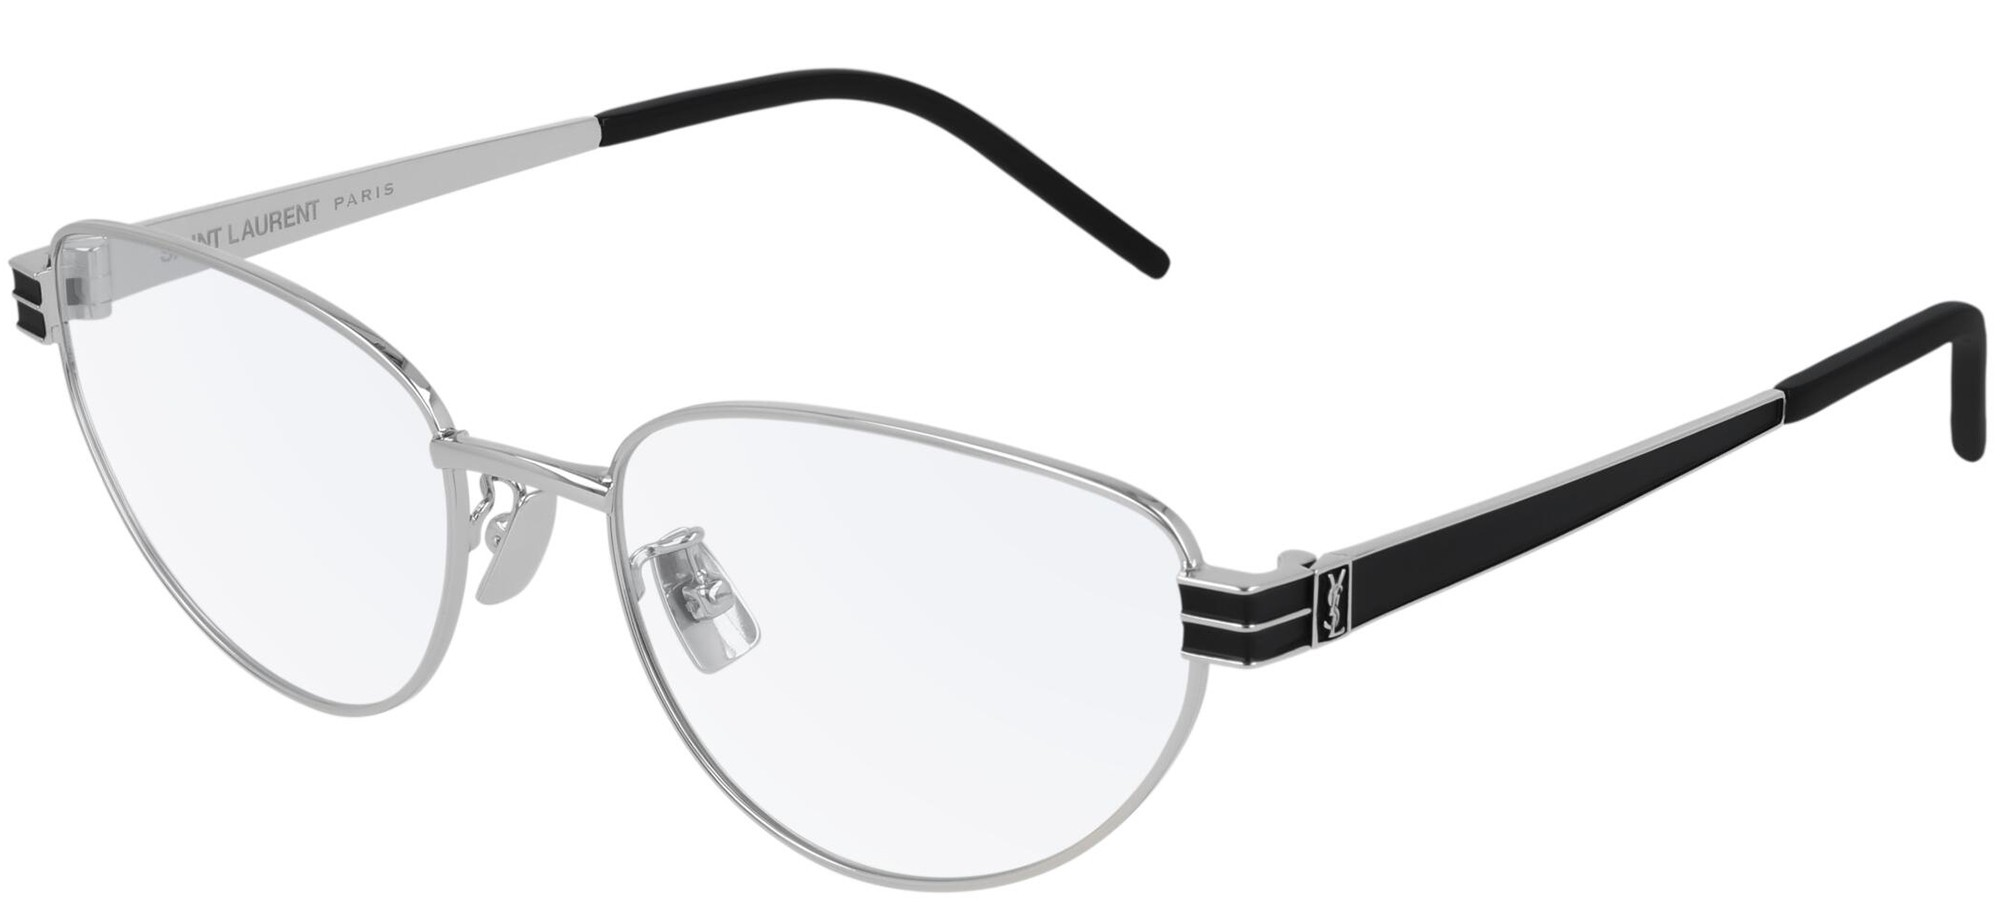 Saint Laurent eyeglasses SL M52